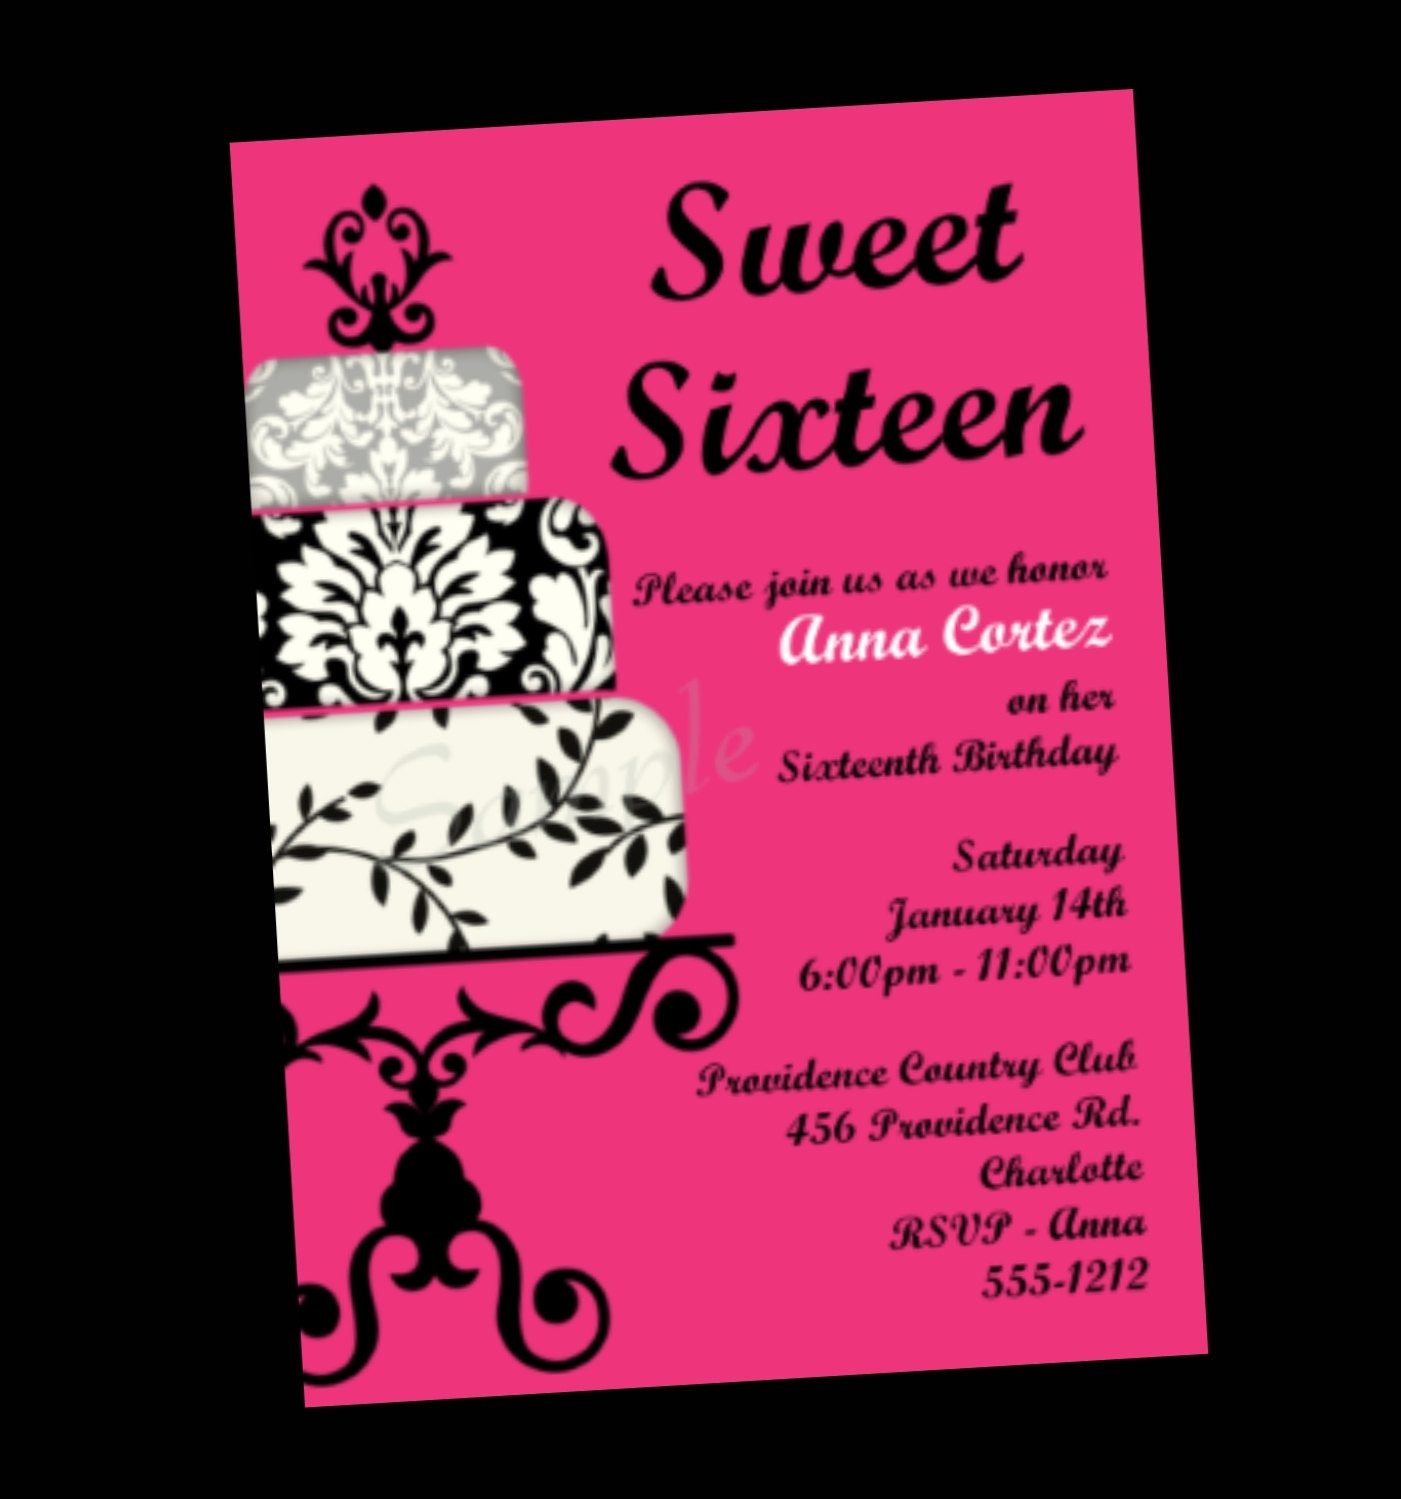 sweet 16 birthday invitation ideas ; birthday-cute-pink-sweet-16-birthday-invitation-card-square-designed-by-onewhimsychick